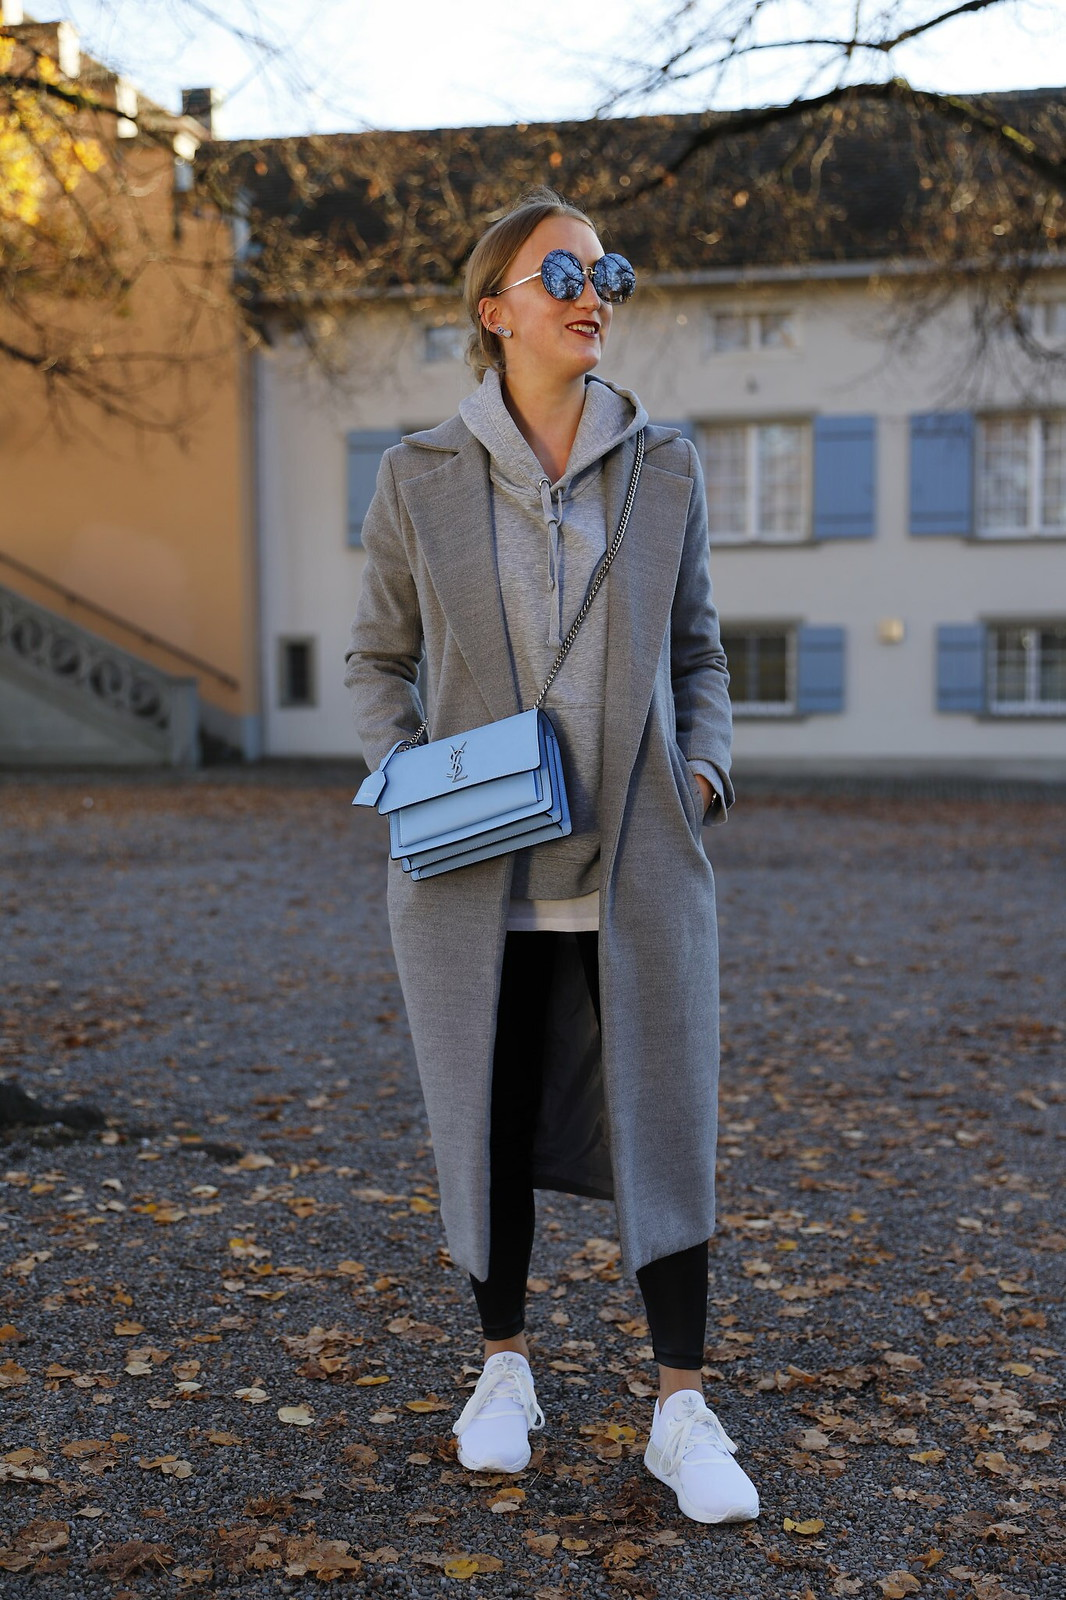 ysl-bag-and-sneakers-whole-look-front-wiebkembg